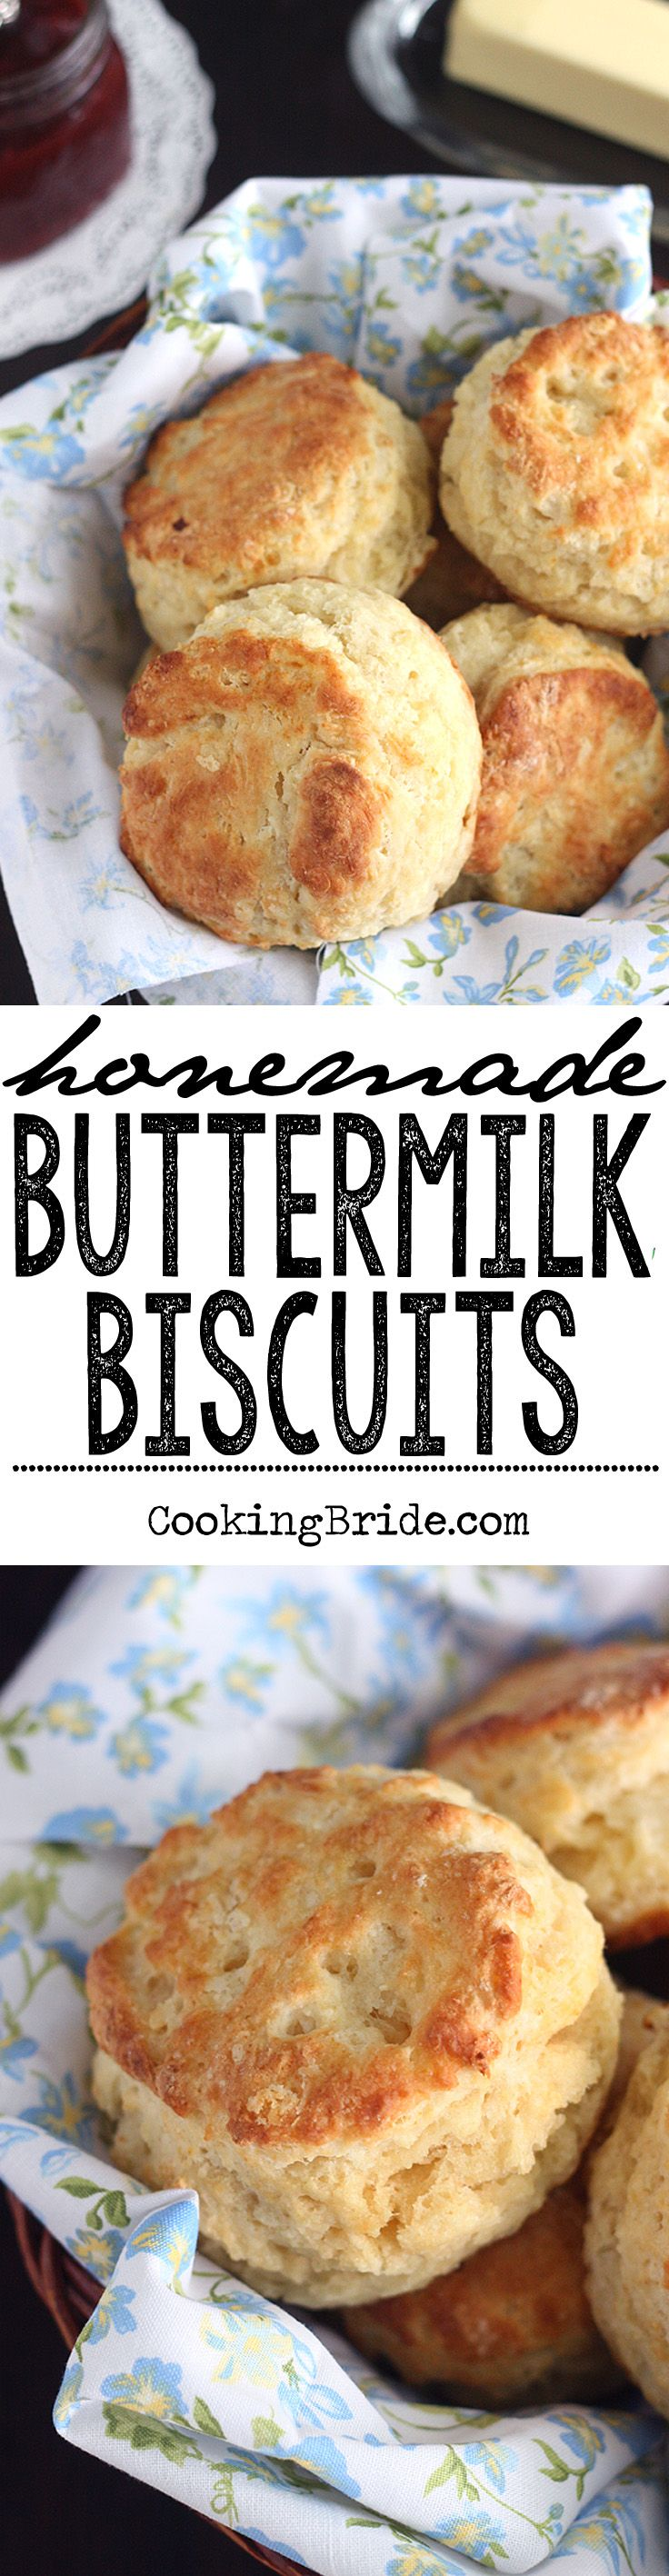 Recipe and tips for making light and fluffy homemade buttermilk biscuits.